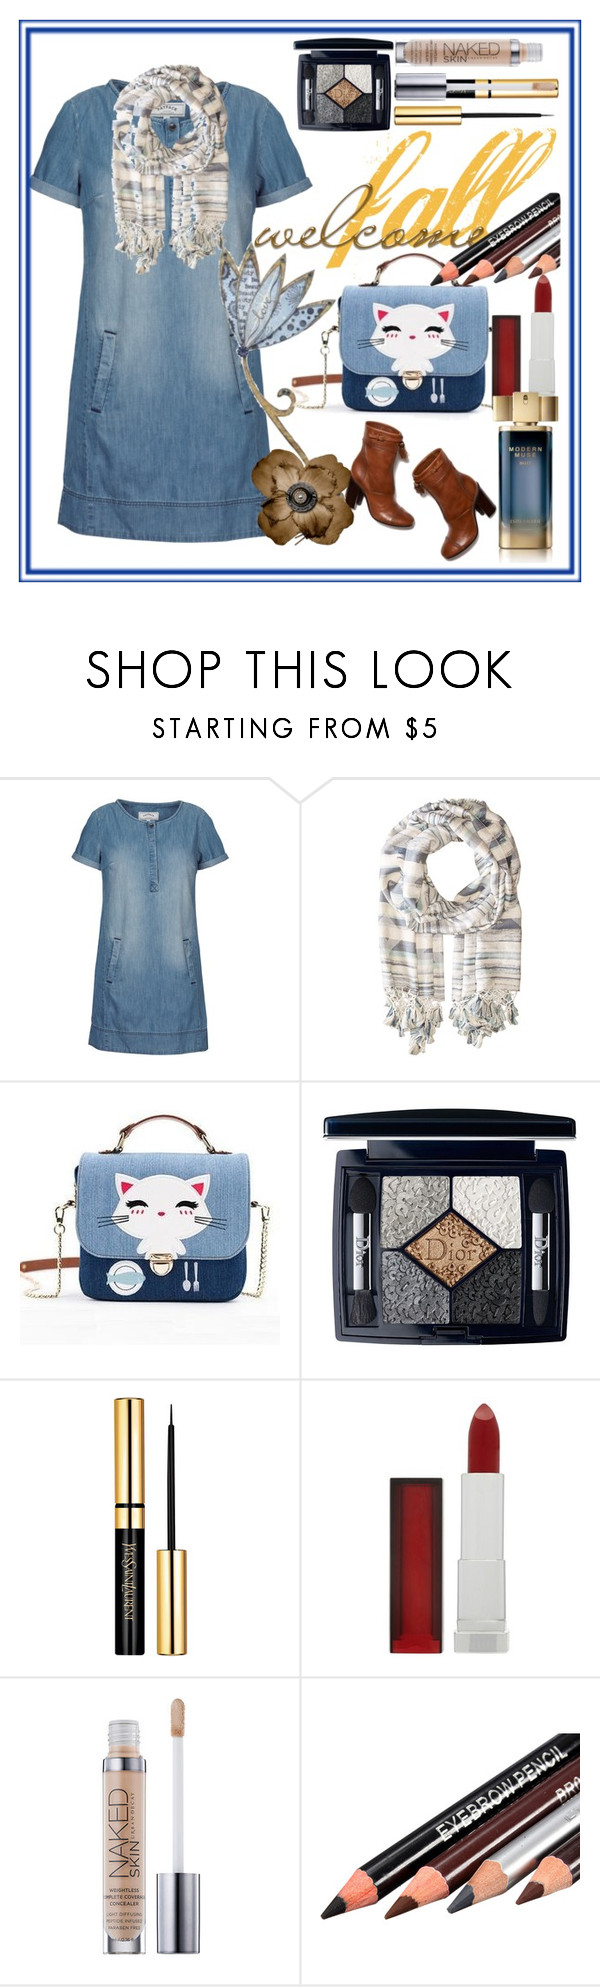 """Welcome Fall"" by bren-johnson ❤ liked on Polyvore featuring Fat Face, Tory Burch, Michael Stars, Christian Dior, Maybelline and Estée Lauder"